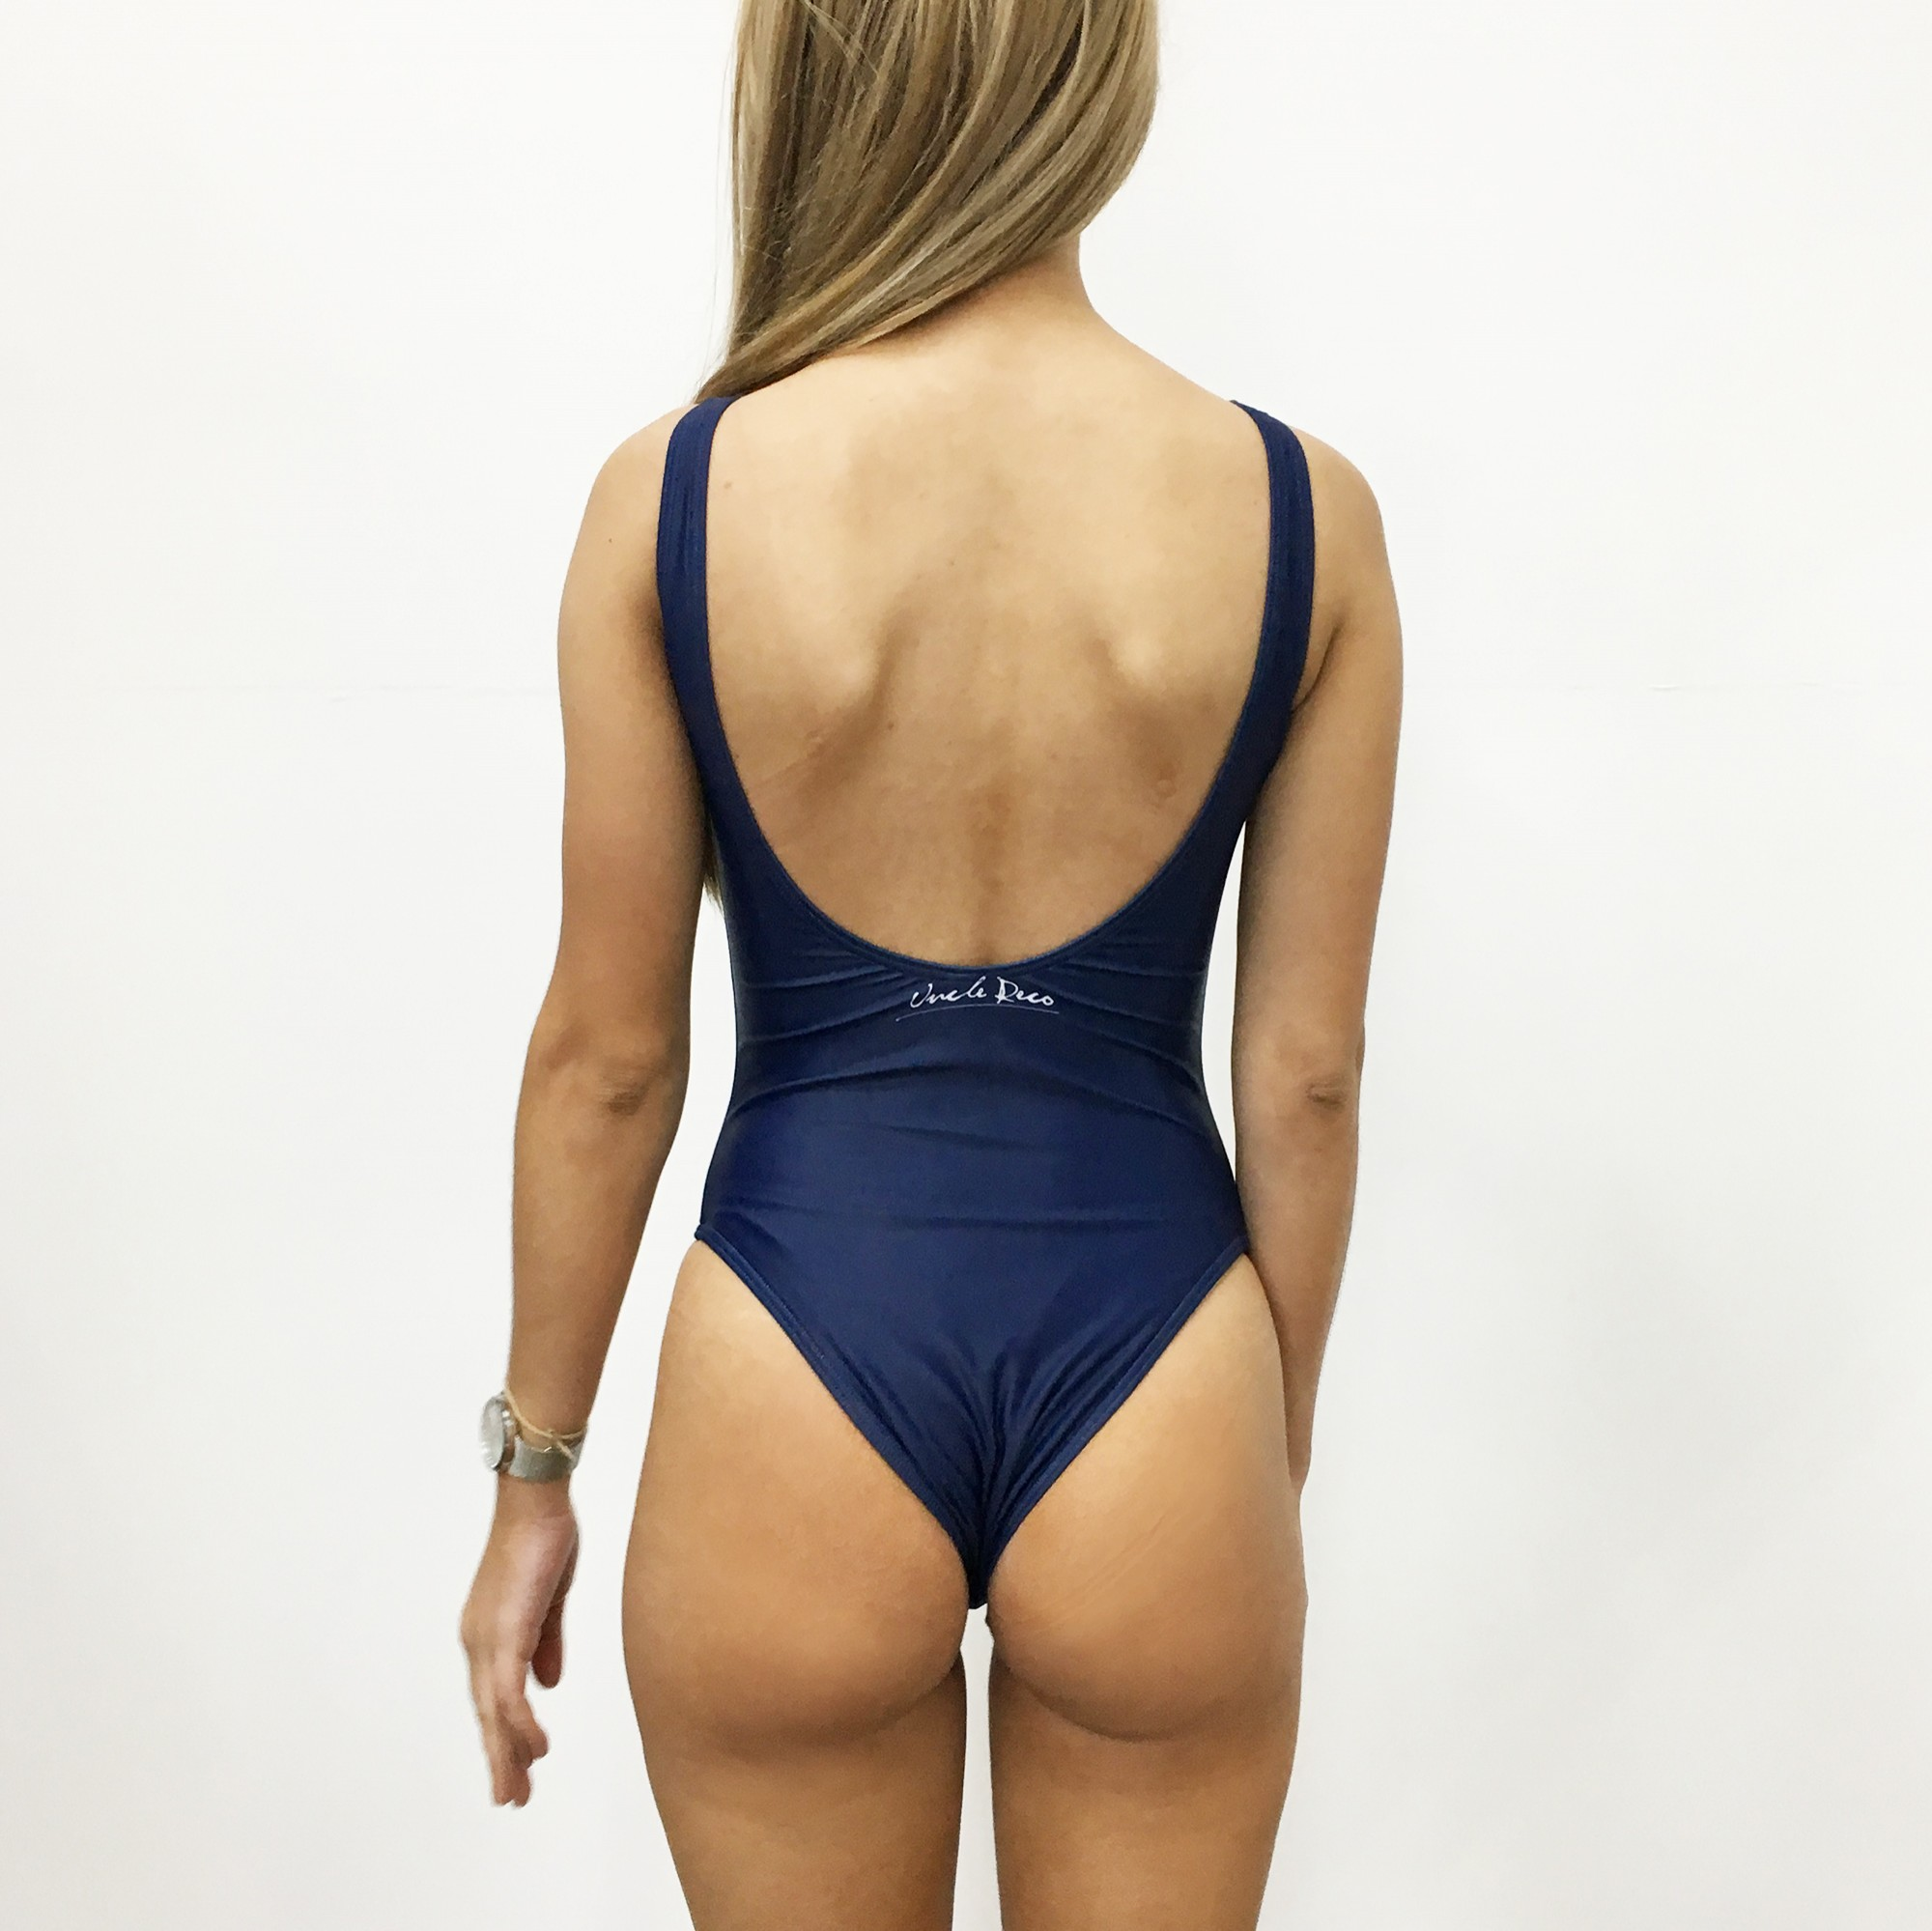 STEP BROS ONE PIECE SWIMSUIT